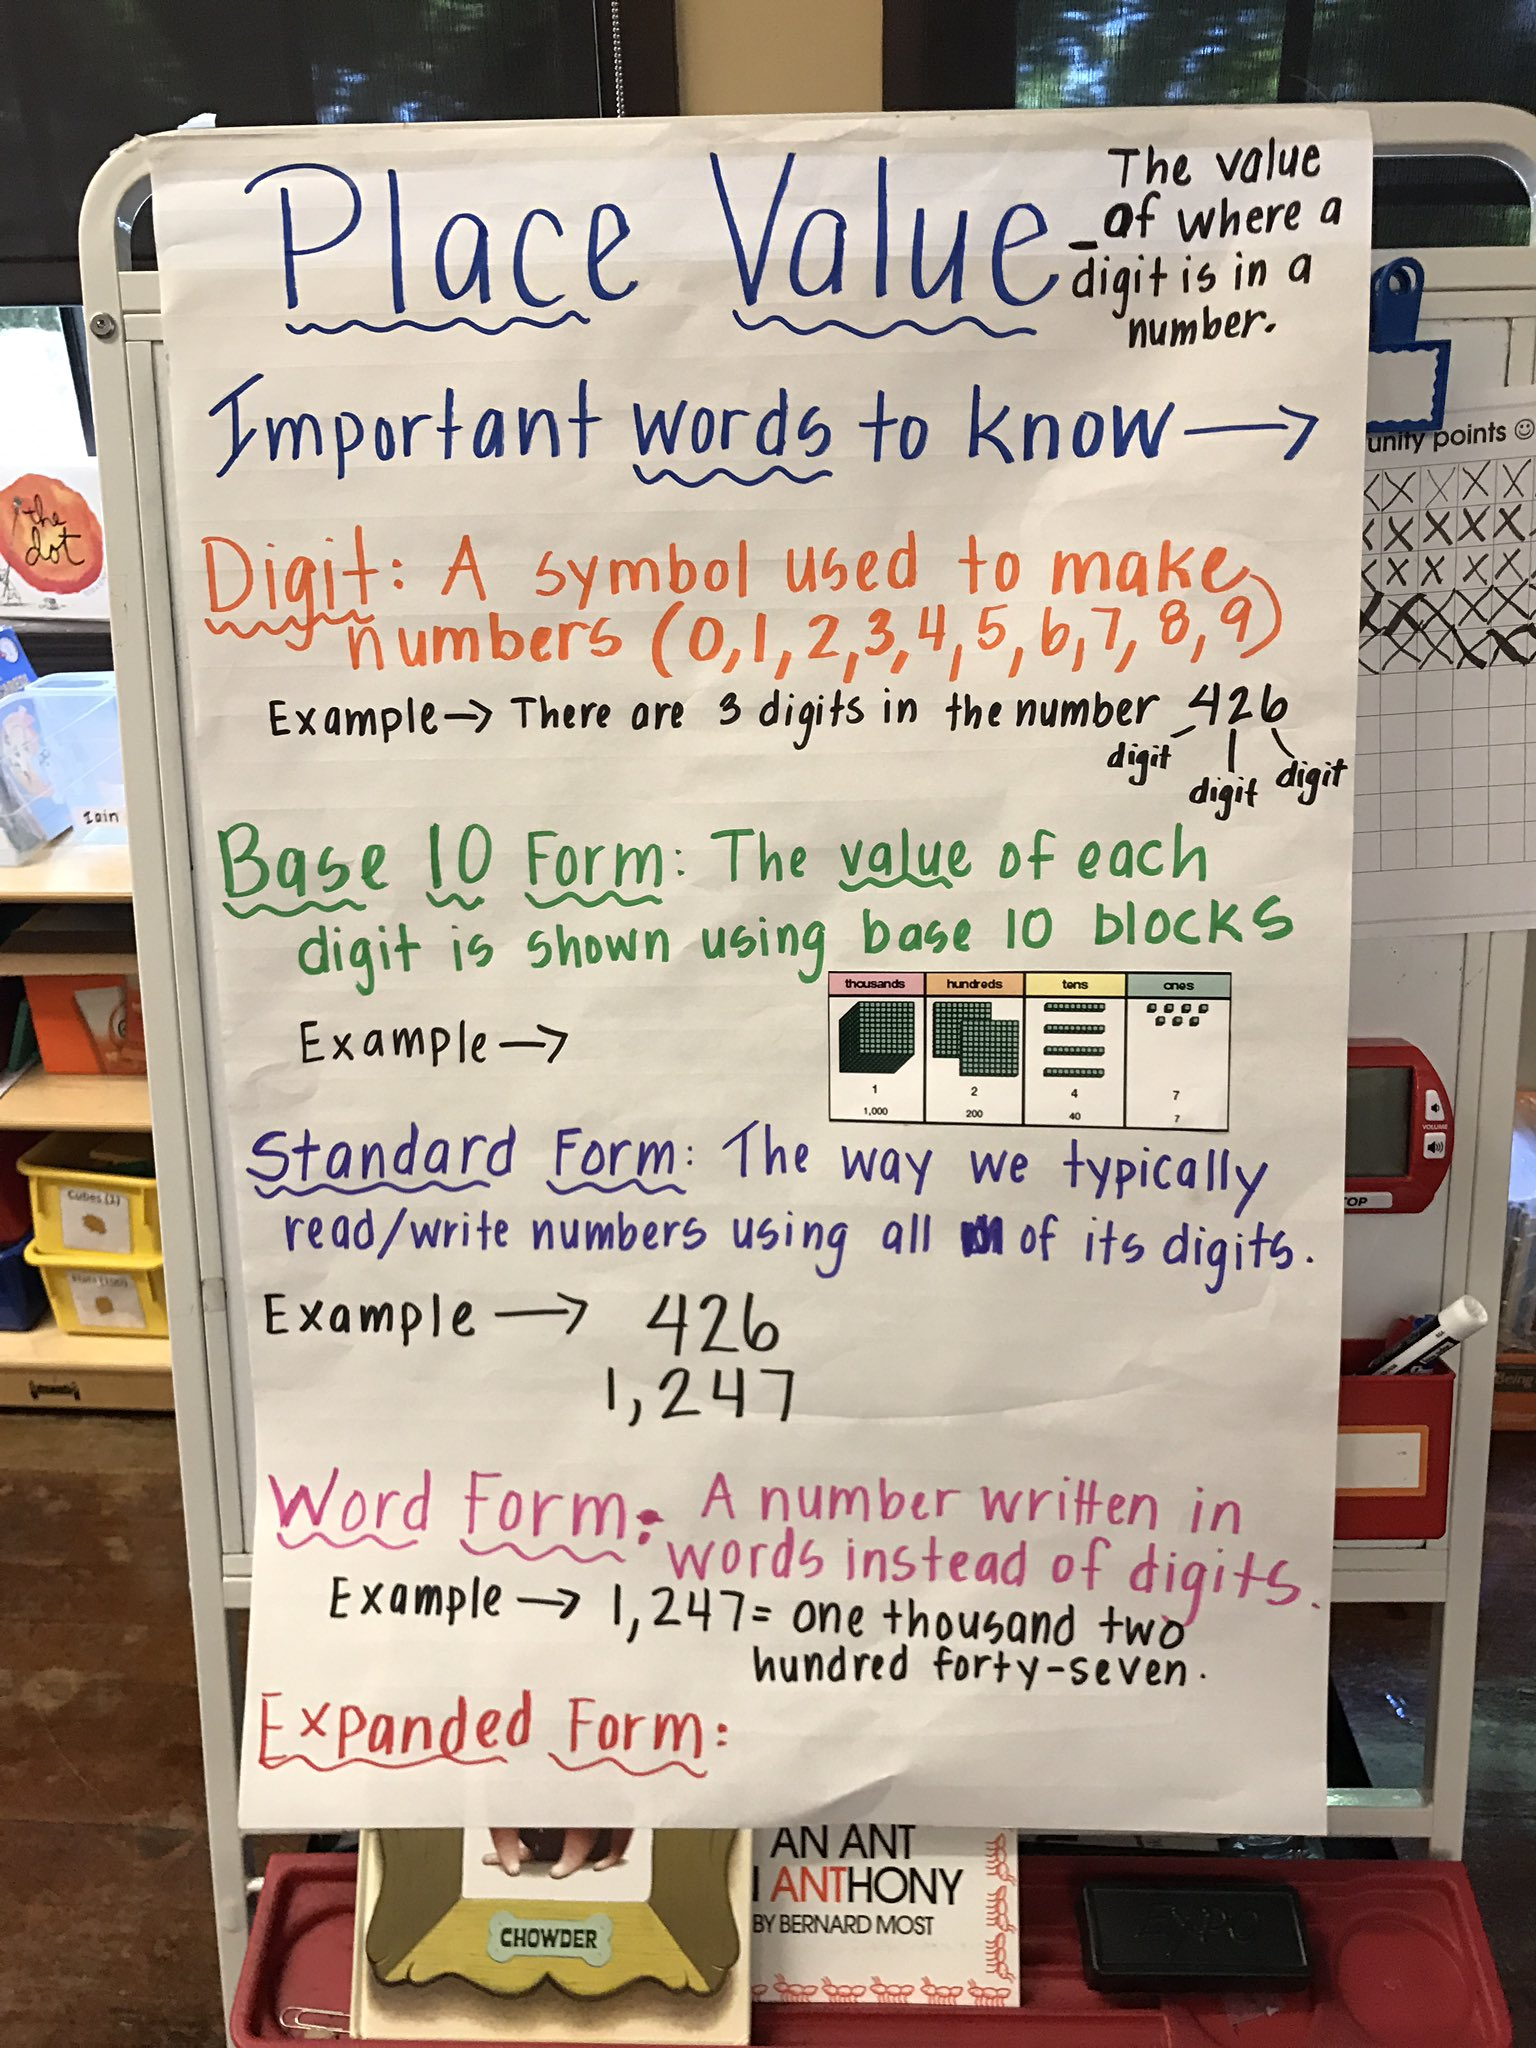 Jen dickens on twitter we learned how to read and write numbers jen dickens on twitter we learned how to read and write numbers to 1000 in standard form base 10 form and word form today falaconquin